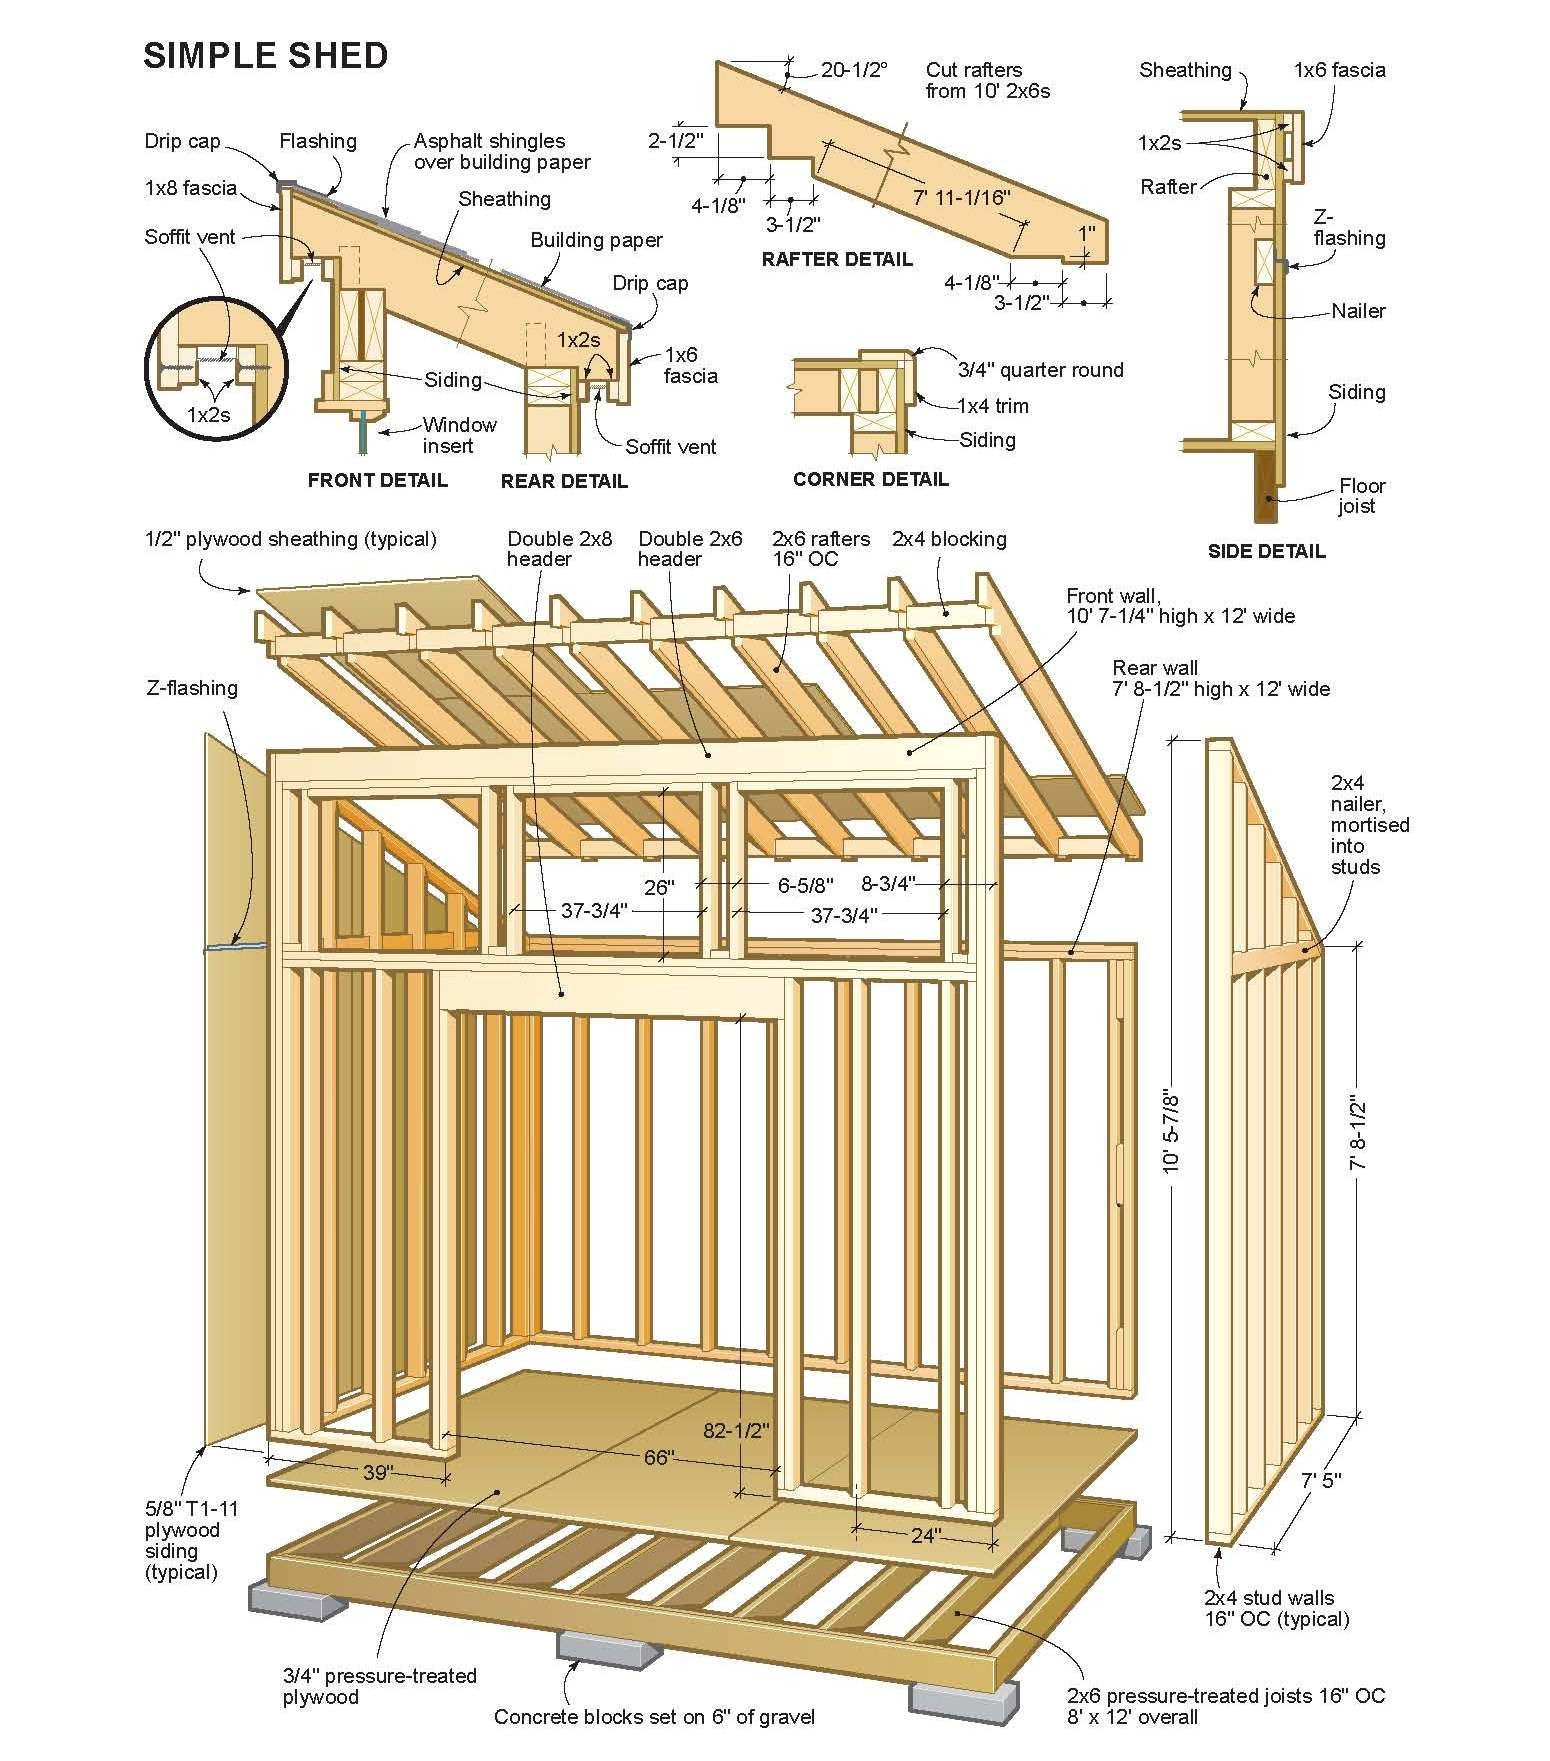 Diy free diy shed plans goehs diy shed plans a how to guide solutioingenieria Images